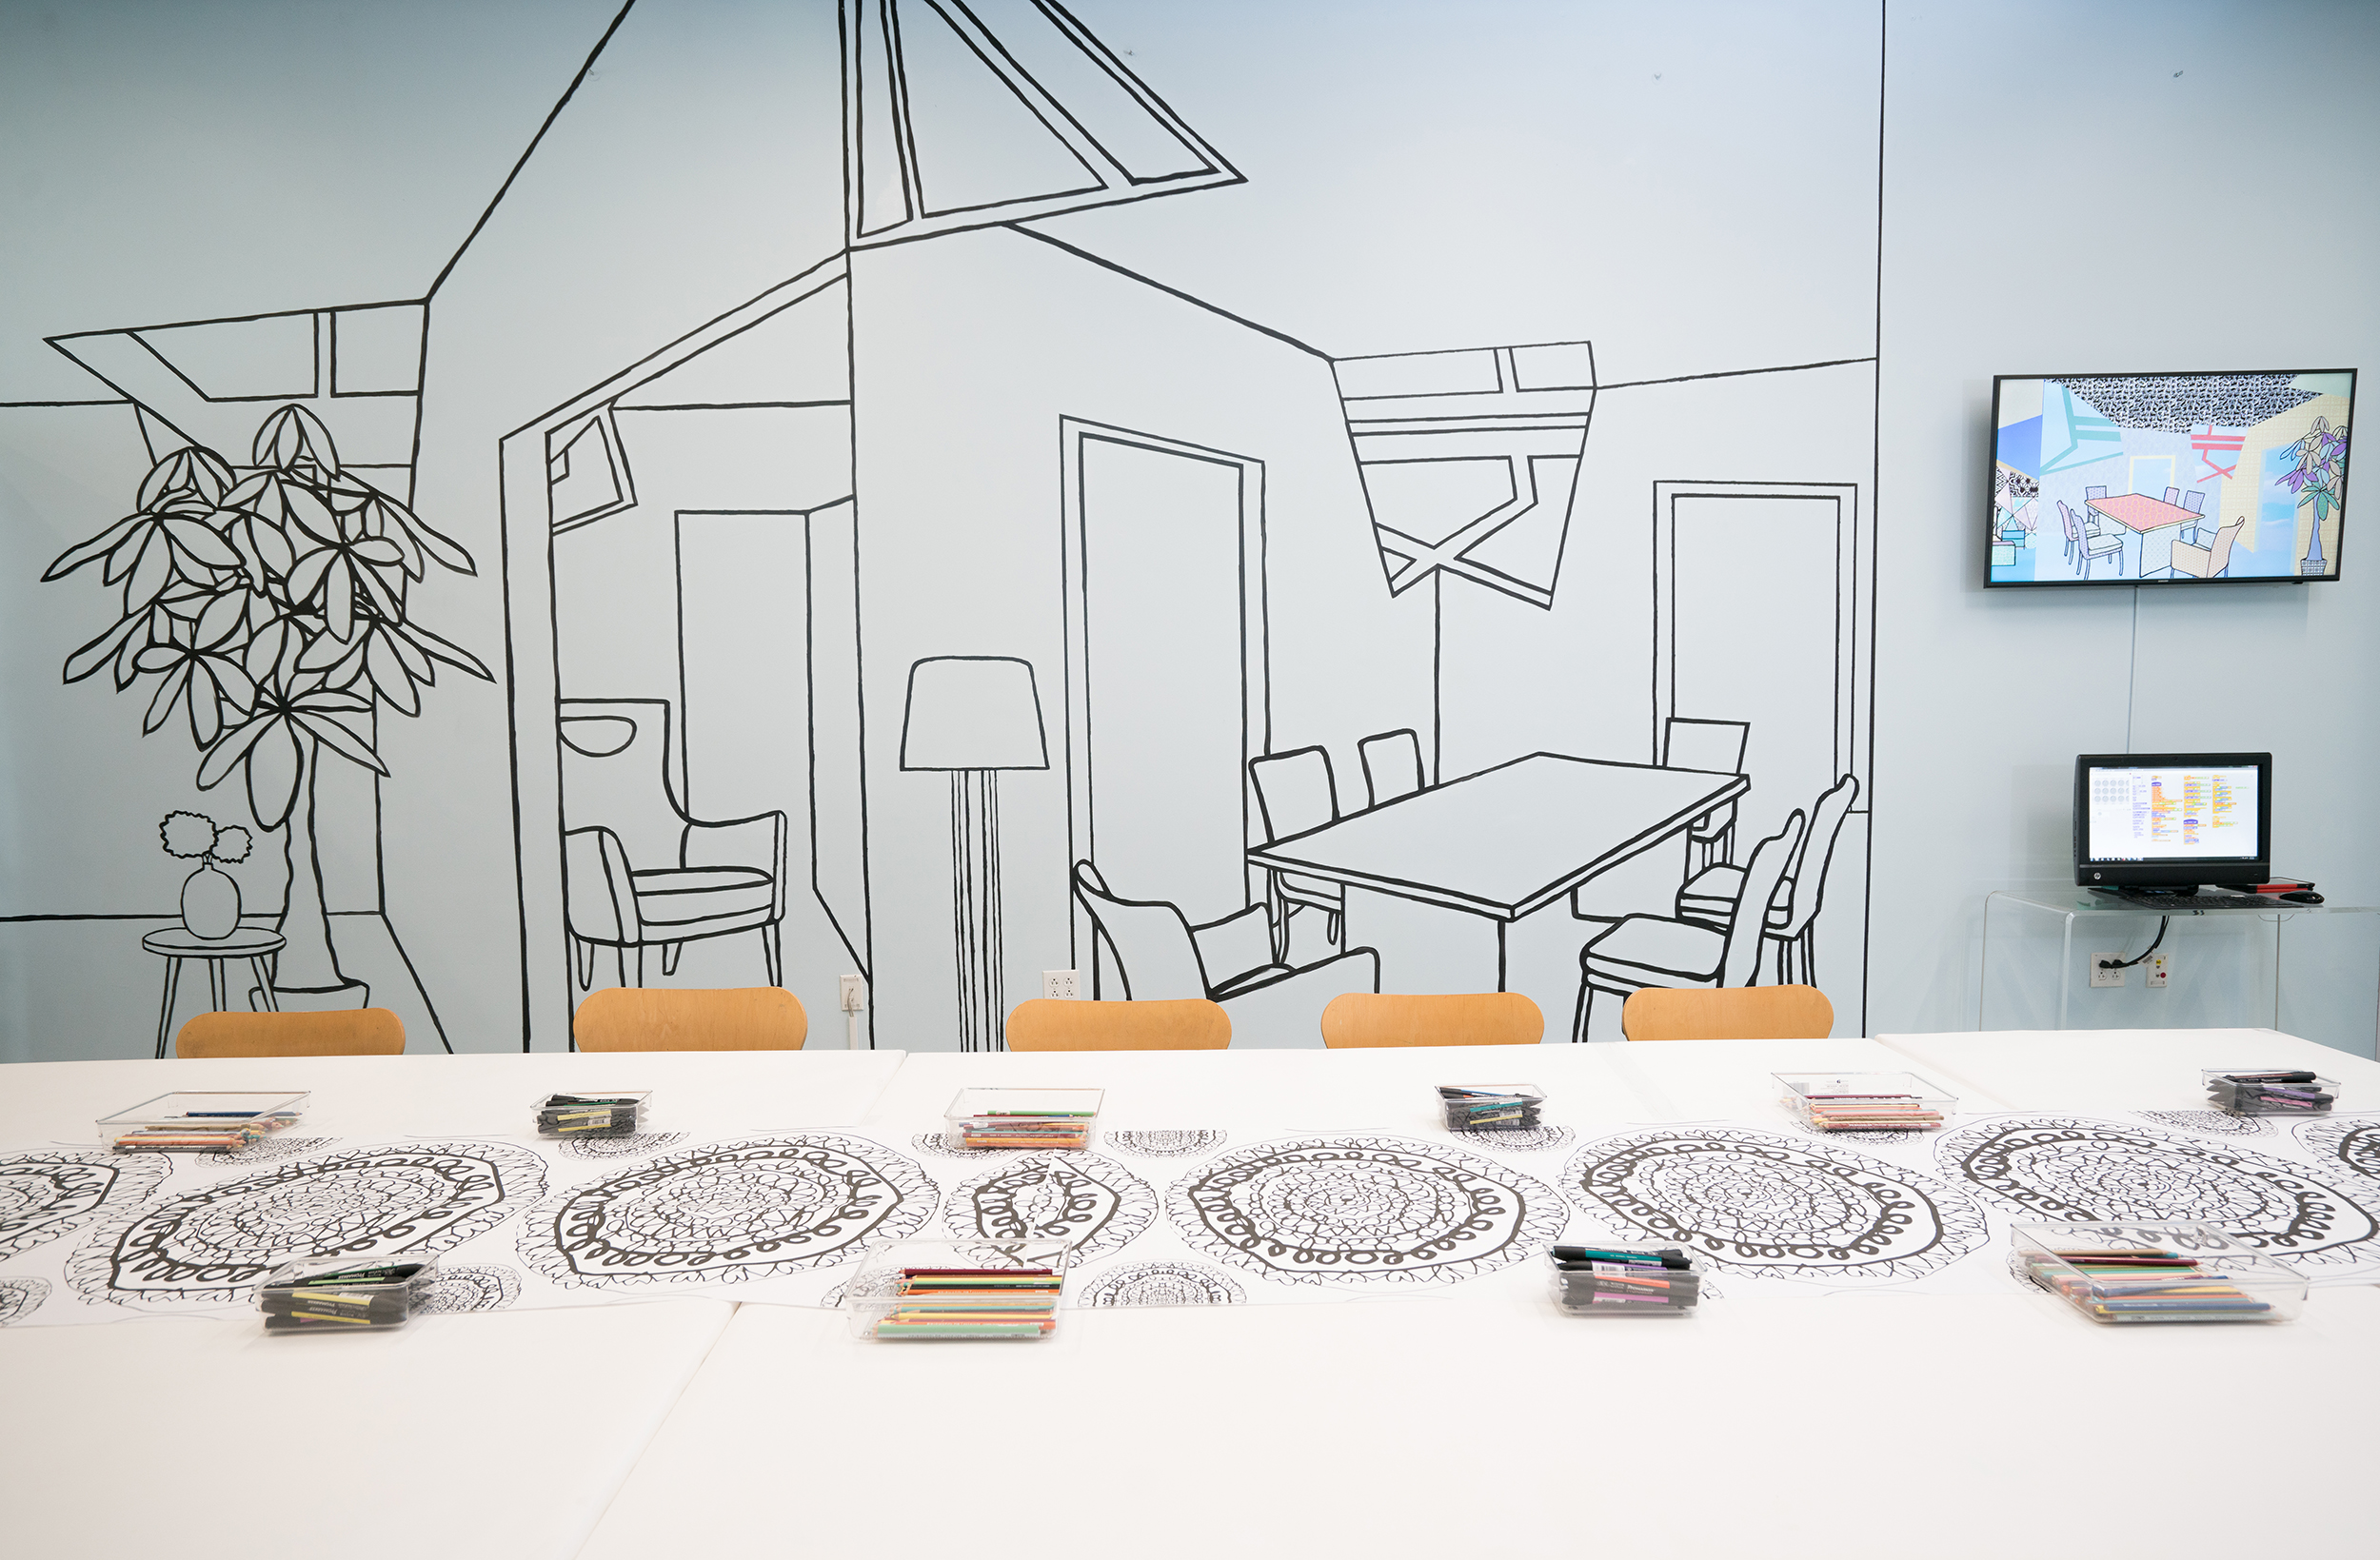 Hybrid Digital Home , Interactive Installation Installation View Museum Visitors Create Patterns and Fill the Line Drawing Using ScratchMIT's Coding Platform The Institute of Contemporary Art, Boston 2018